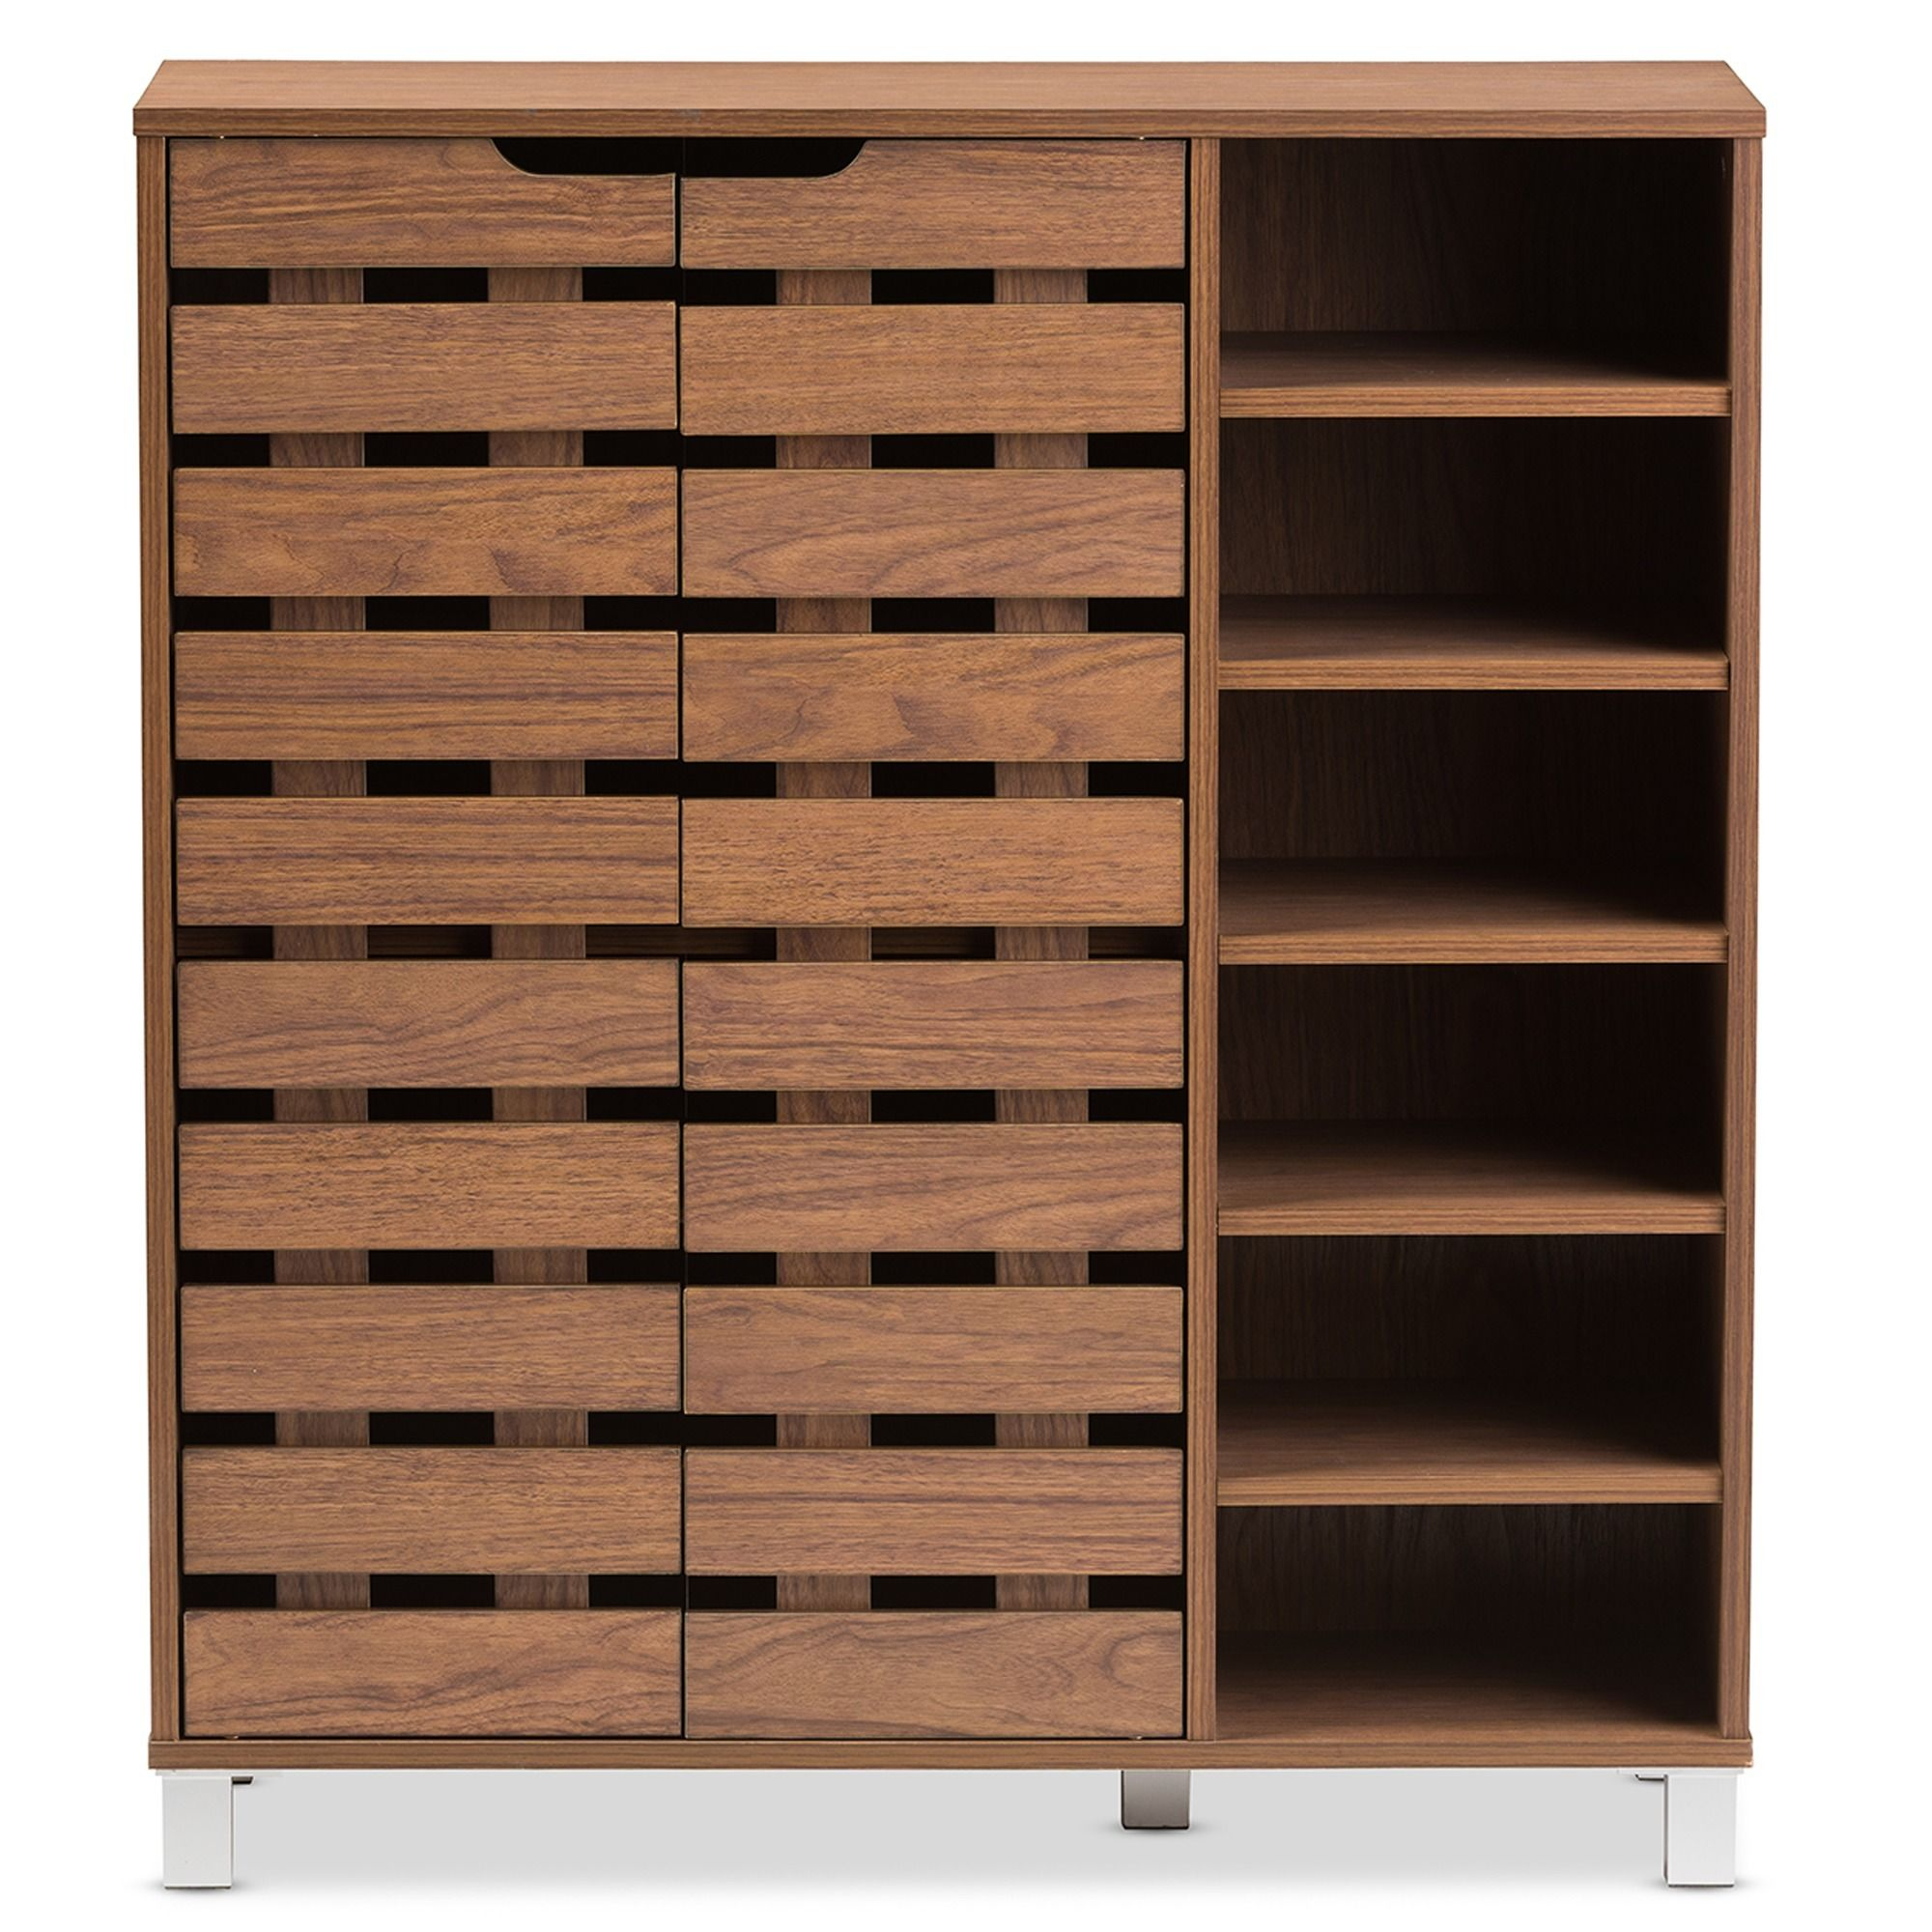 Doors and drawers adobe contemporary style flat panel cabinet door - Contemporary Storage Cabinet By Baxton Studio By Baxton Studio